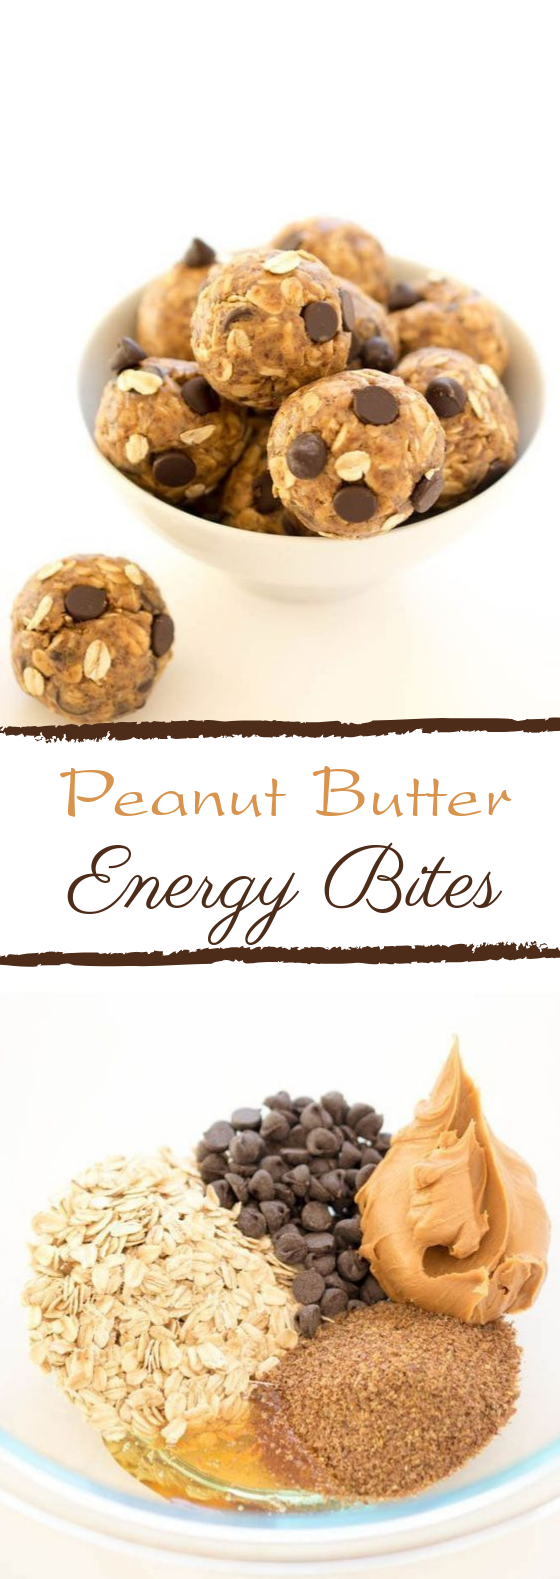 5 Ingredient Peanut Butter Energy Bites #breakfast #healthy